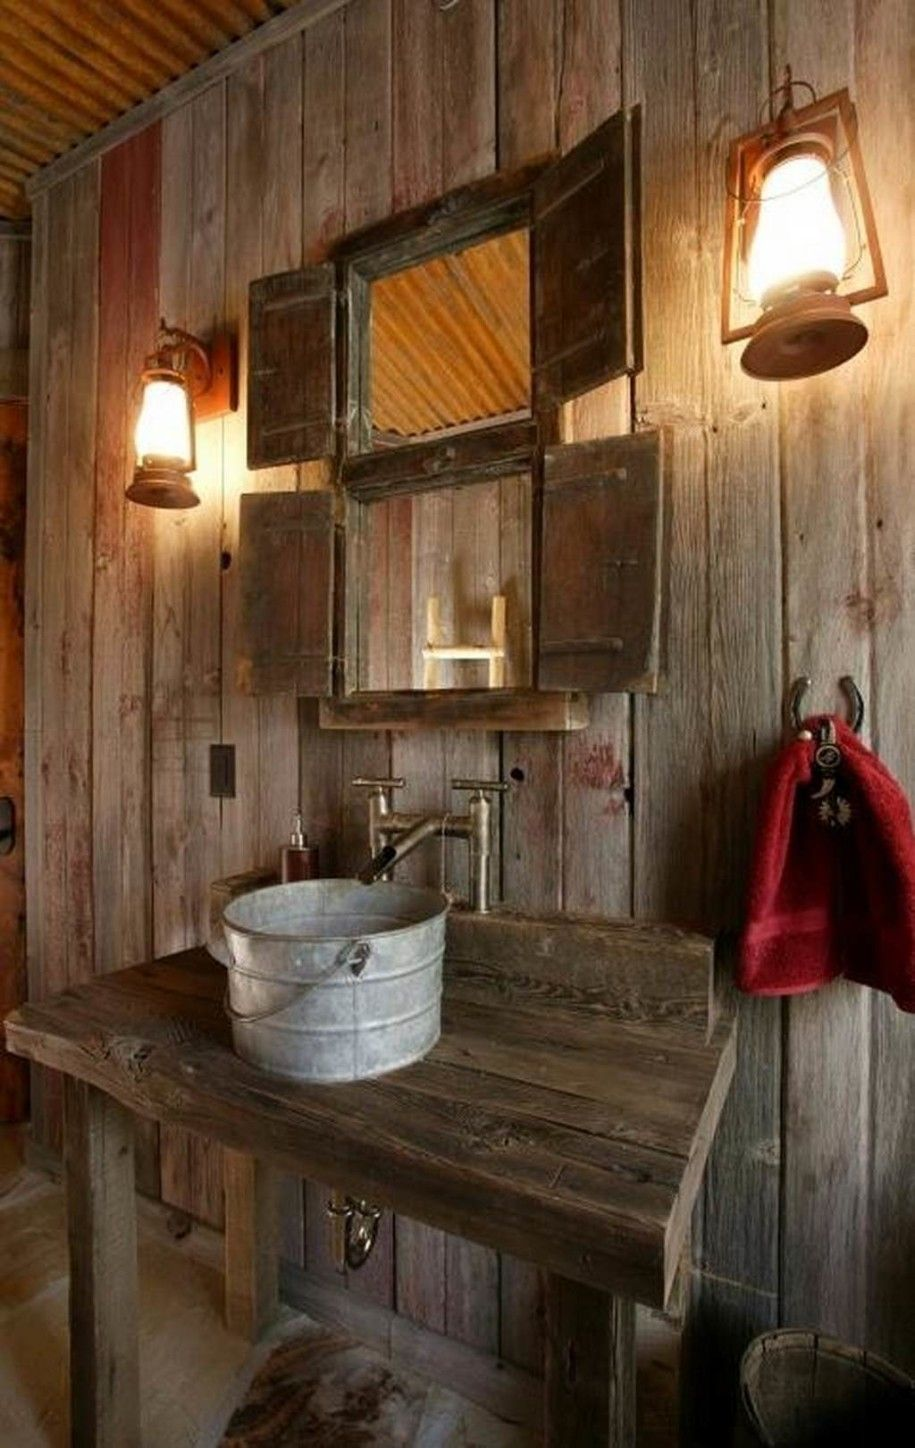 simple rustic bathroom designs. Simple And Rustic Bathroom Design For Modern Home : Barn With Classic Vanity From Designs